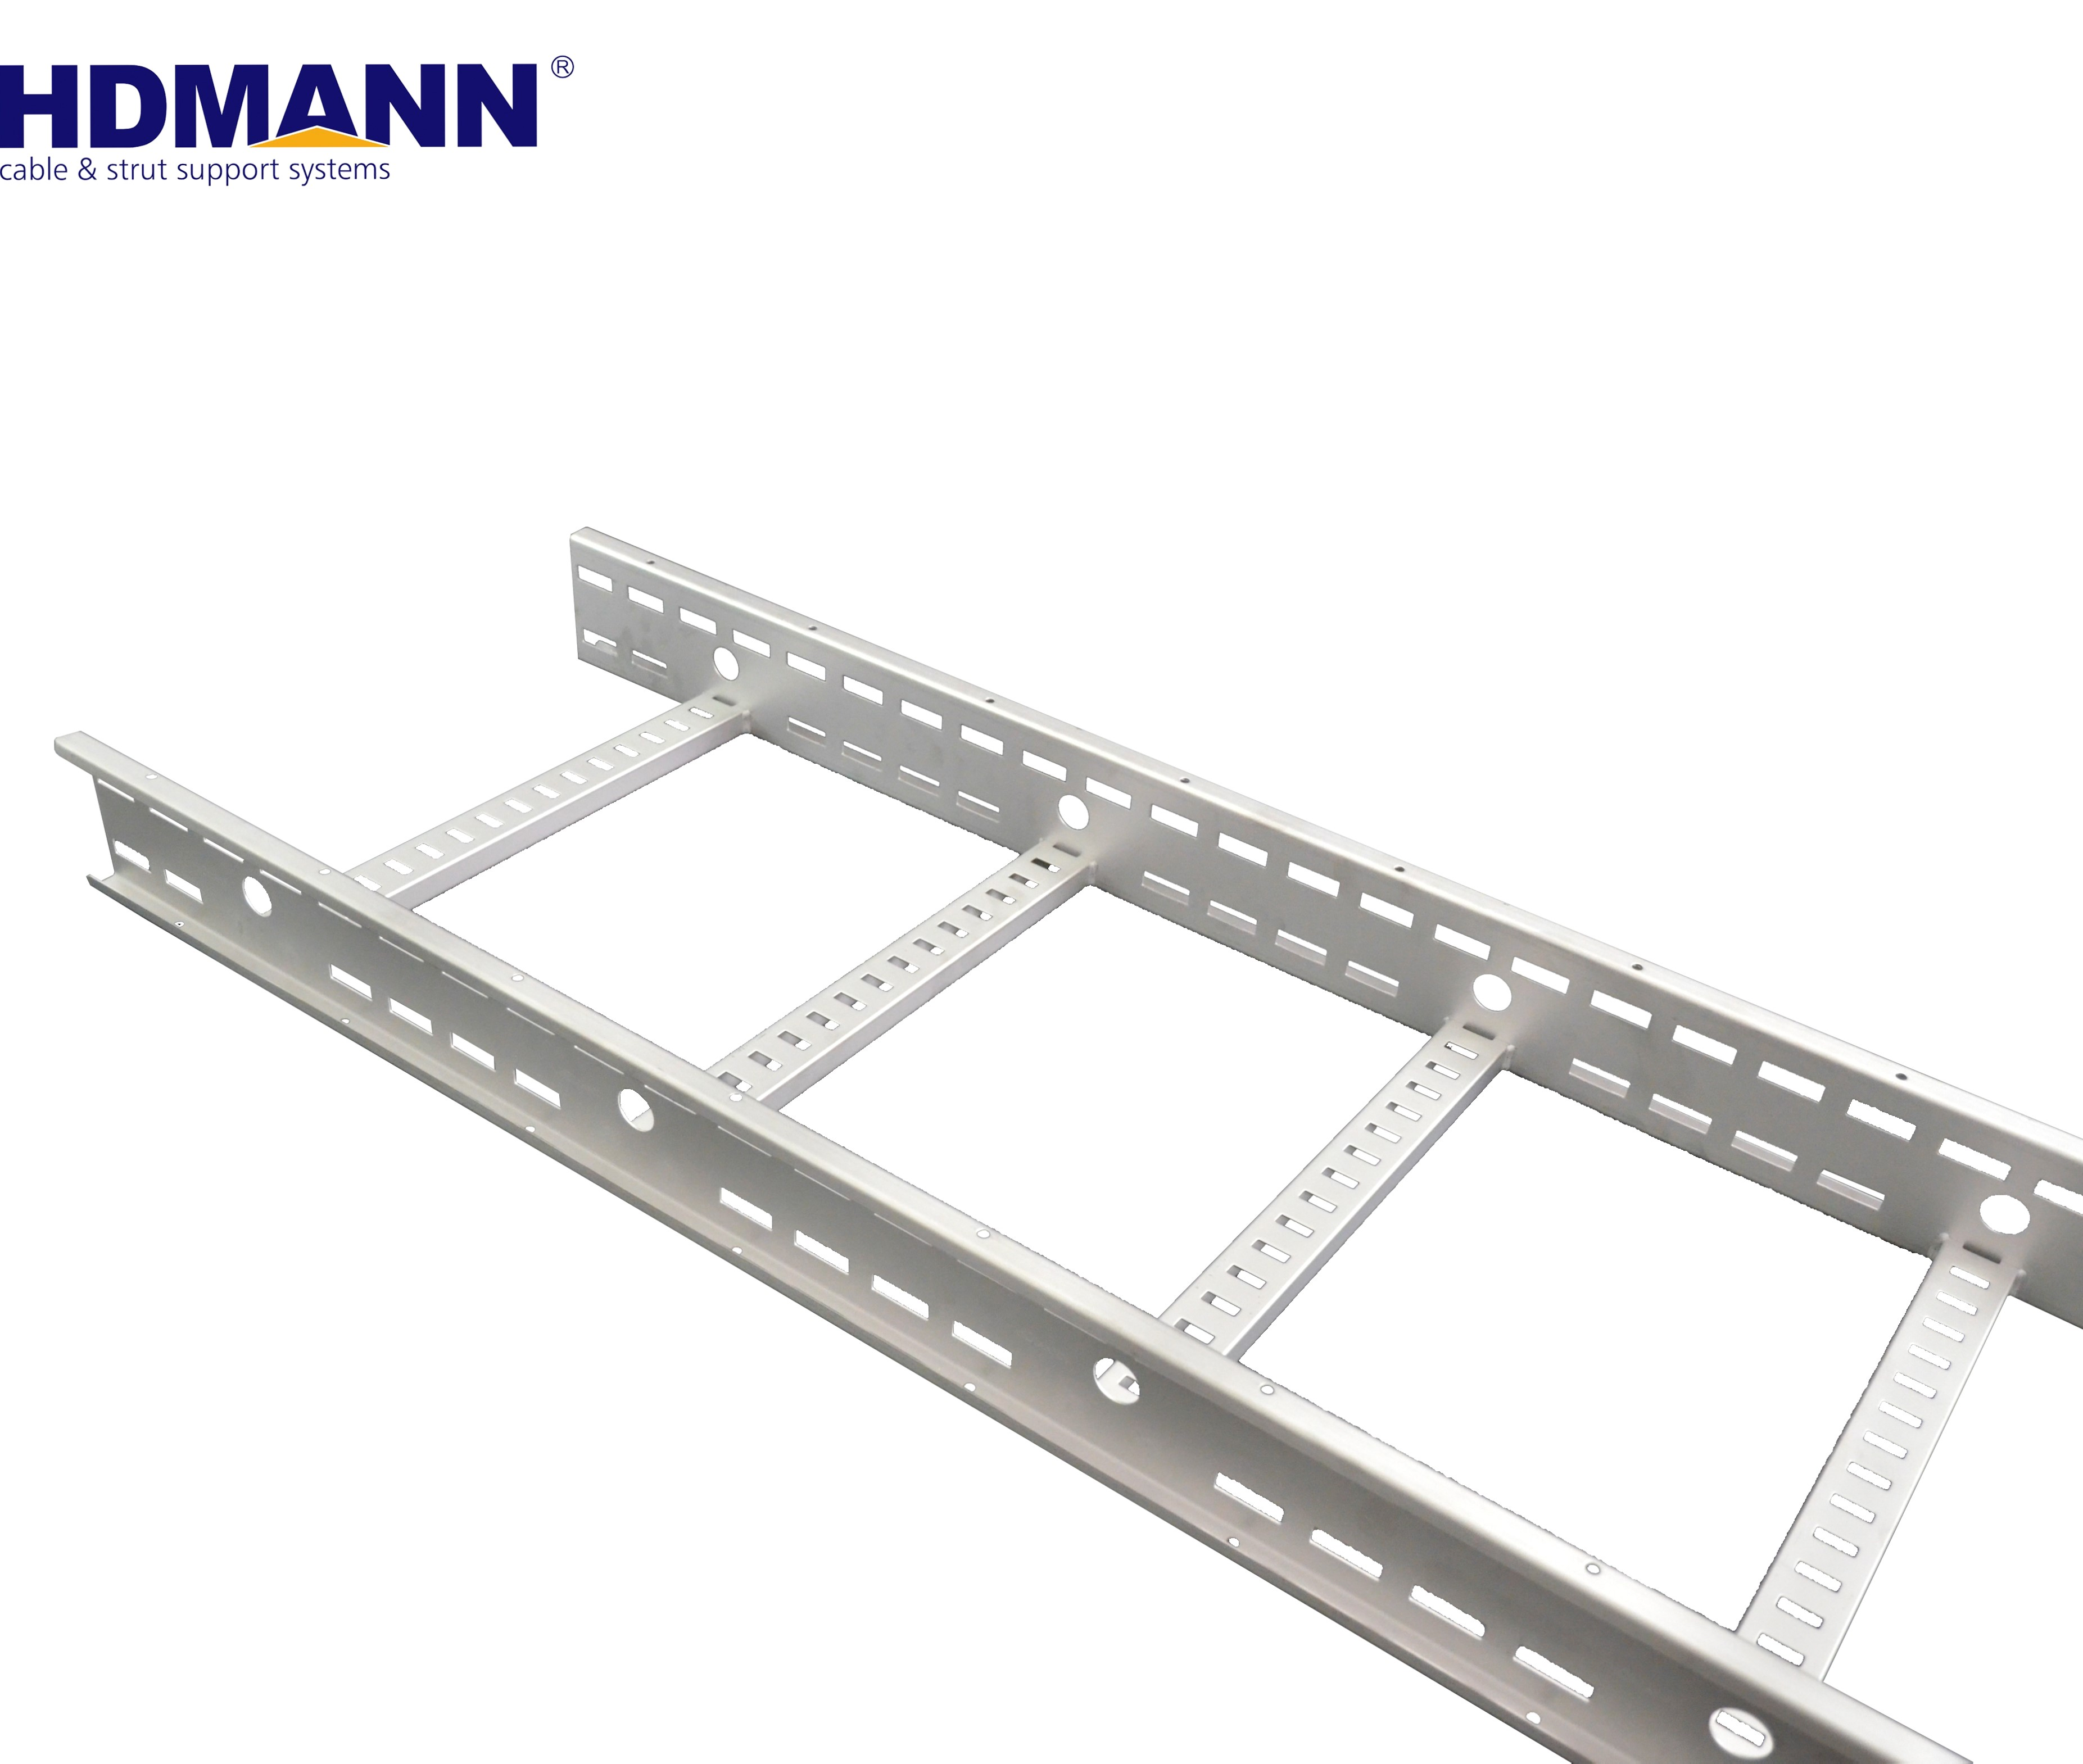 hdmann stainless steel ss304 ladder type cable tray bicycle ladder rack buy stainless steel ss304 ladder type cable tray ladder type cable